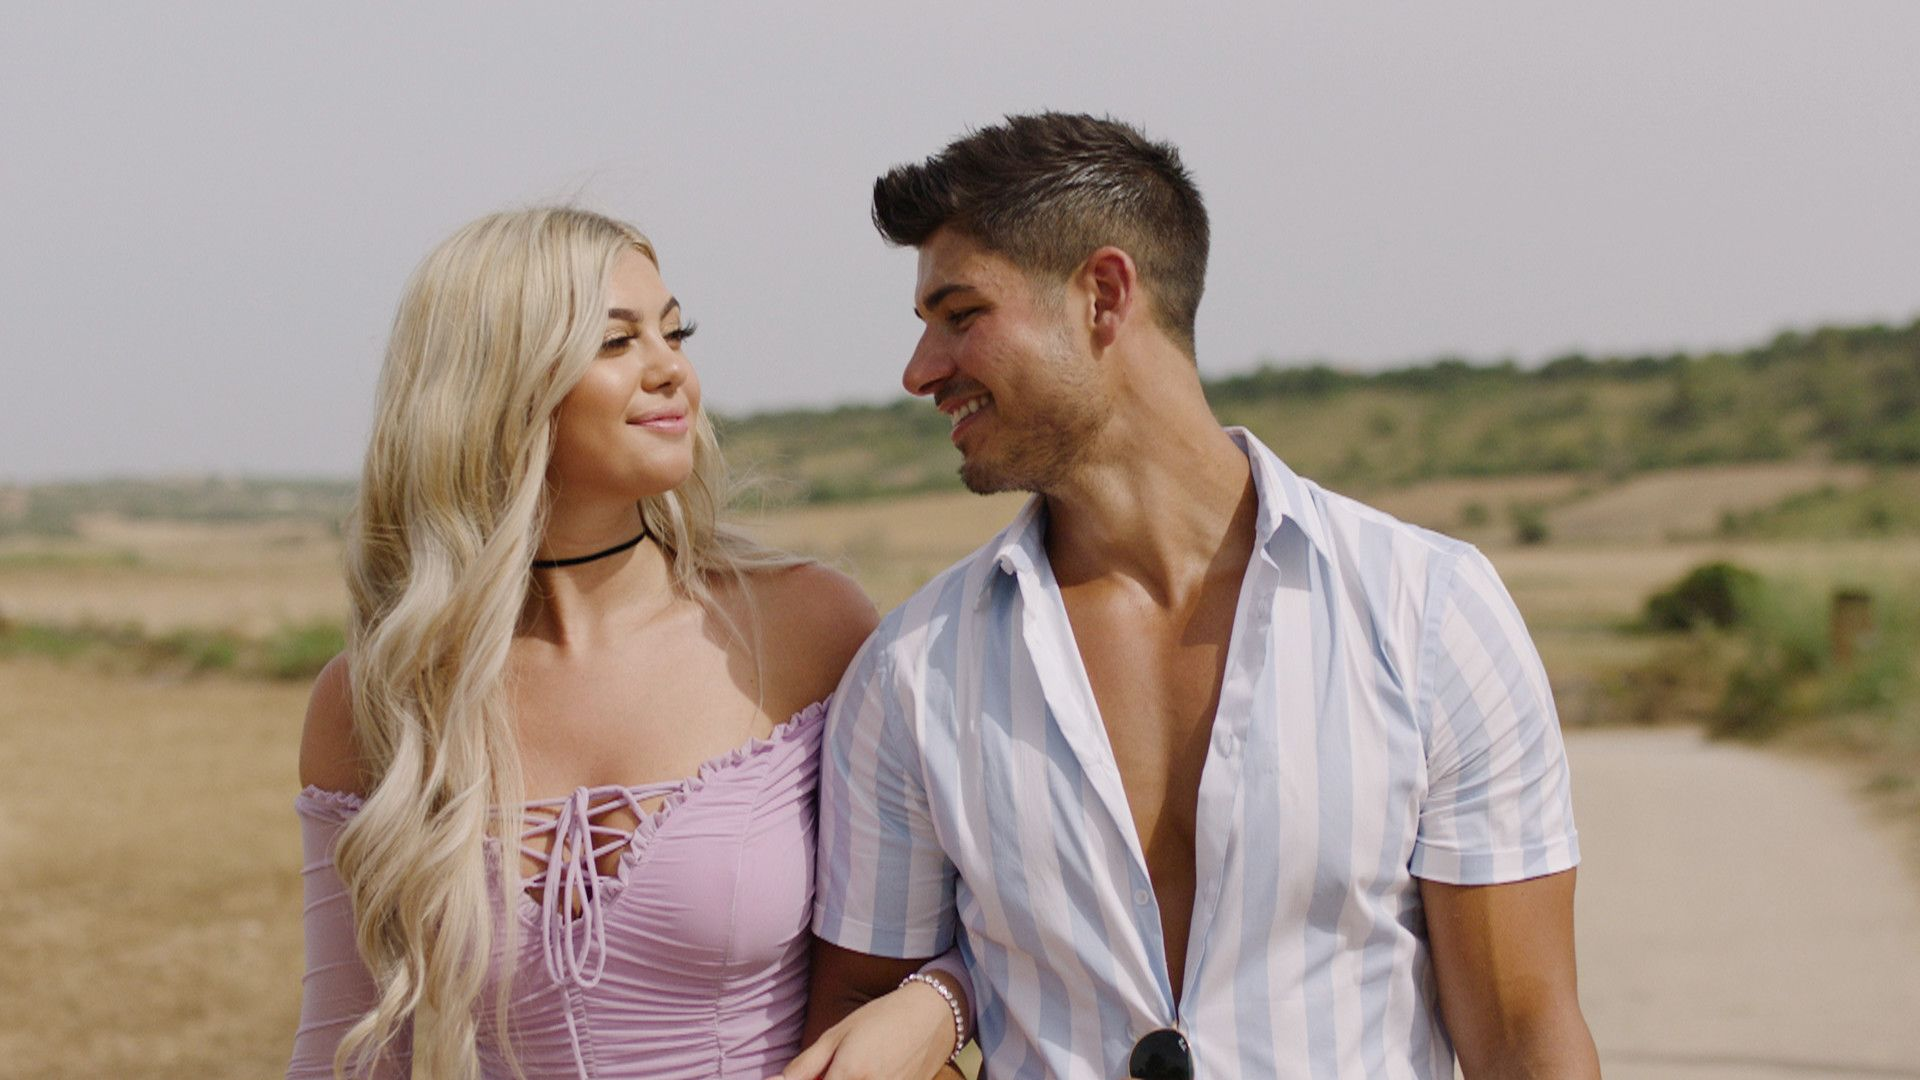 Image may contain: Love Island prize money, Love Island, final, Belle, Anton, split, steal, love, money, last episode, winnings, prize, odds,  Shirt, Girl, Kid, Blonde, Woman, Teen, Child, Female, Robe, Evening Dress, Fashion, Gown, Clothing, Apparel, Human, Person